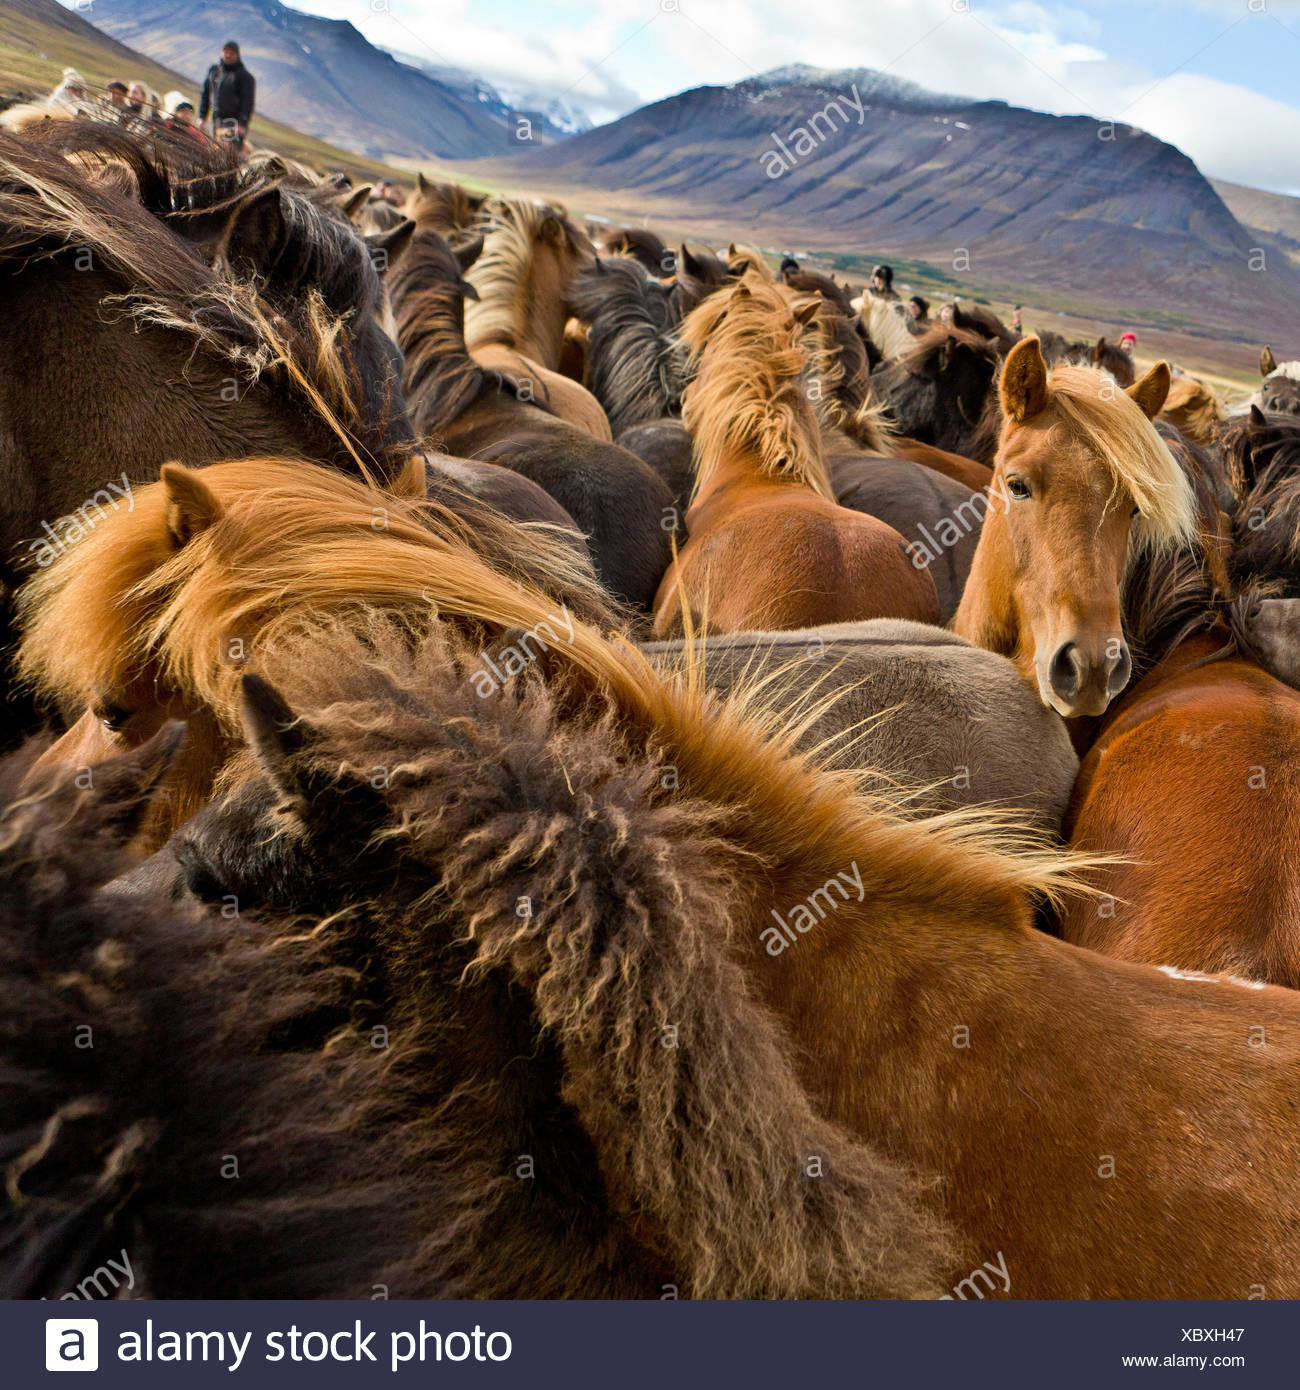 Annual Horse Round Up-Laufskalarett, Skagafjordur, Iceland Farmers keep up a long tradition of letting their horses roam around freely in the commons during the summer, Every autumn horses are rounded up and sorted, - Stock Image